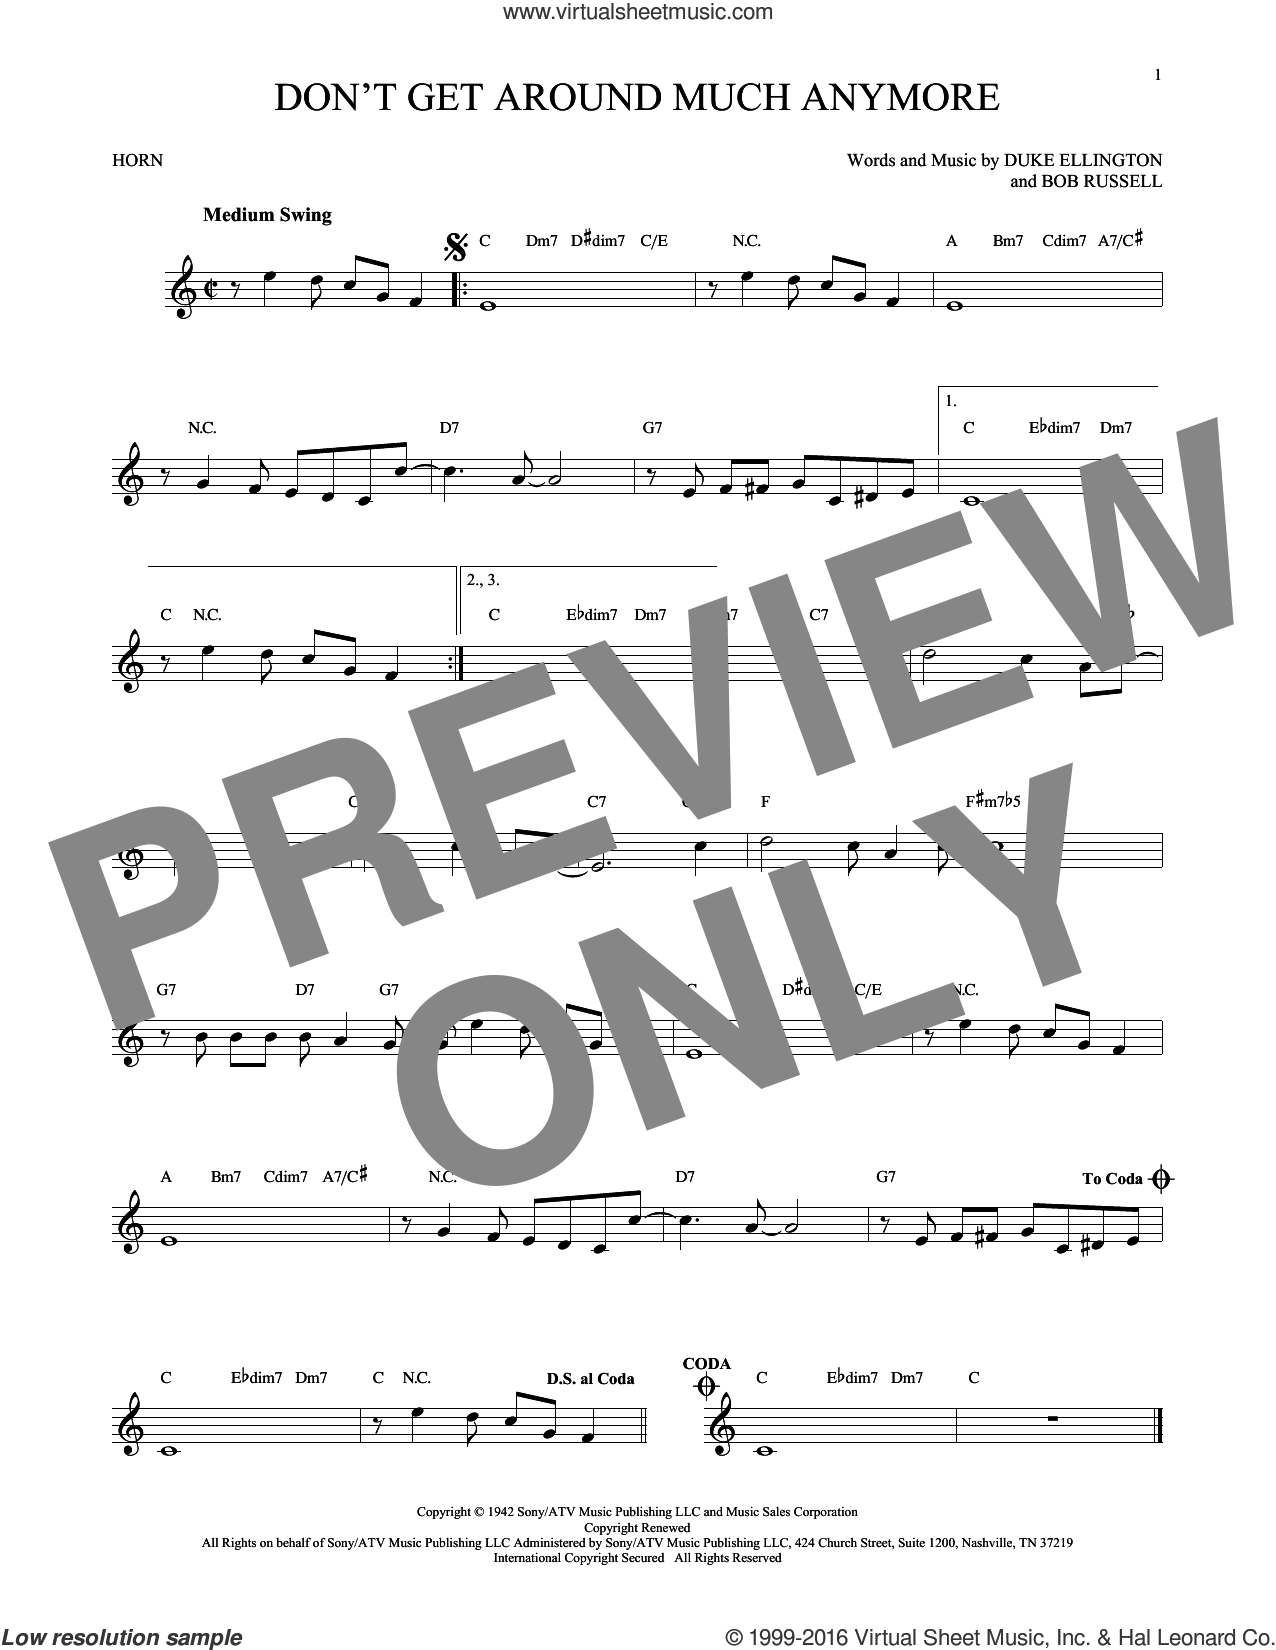 Don't Get Around Much Anymore sheet music for horn solo by Duke Ellington and Bob Russell, intermediate skill level